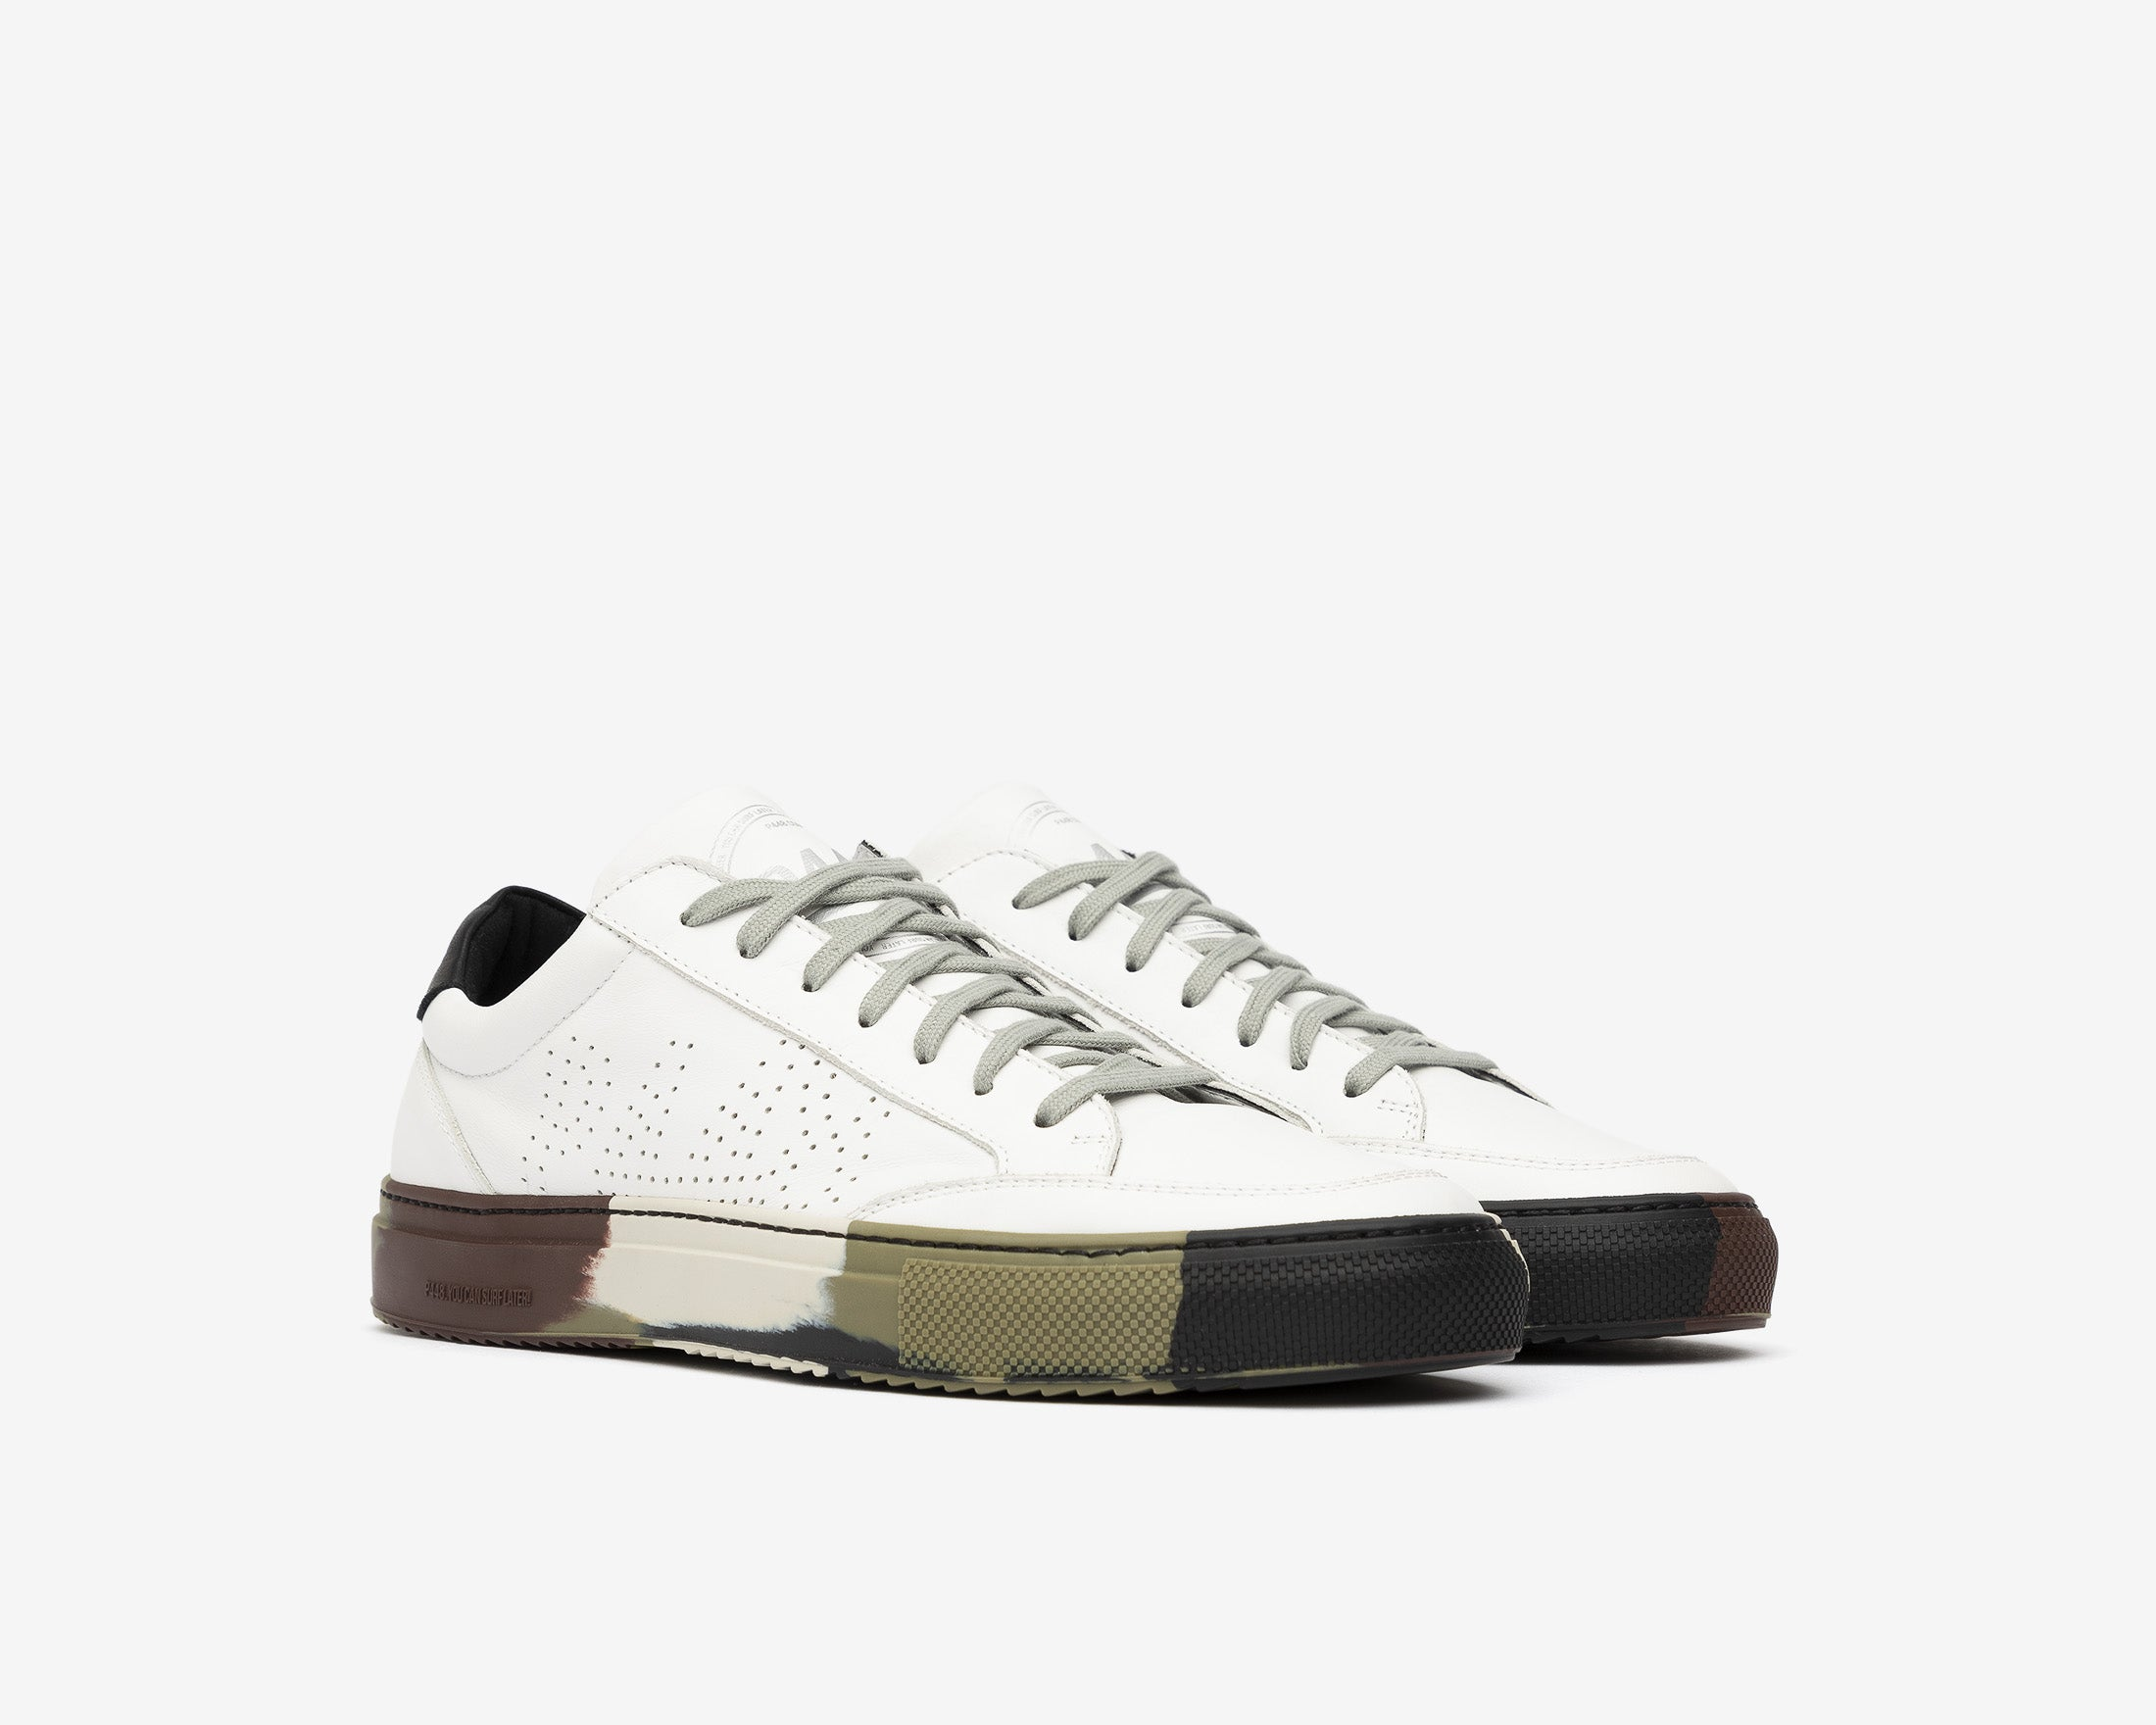 SohoP Low-Top Sneaker in White/Camo - Side